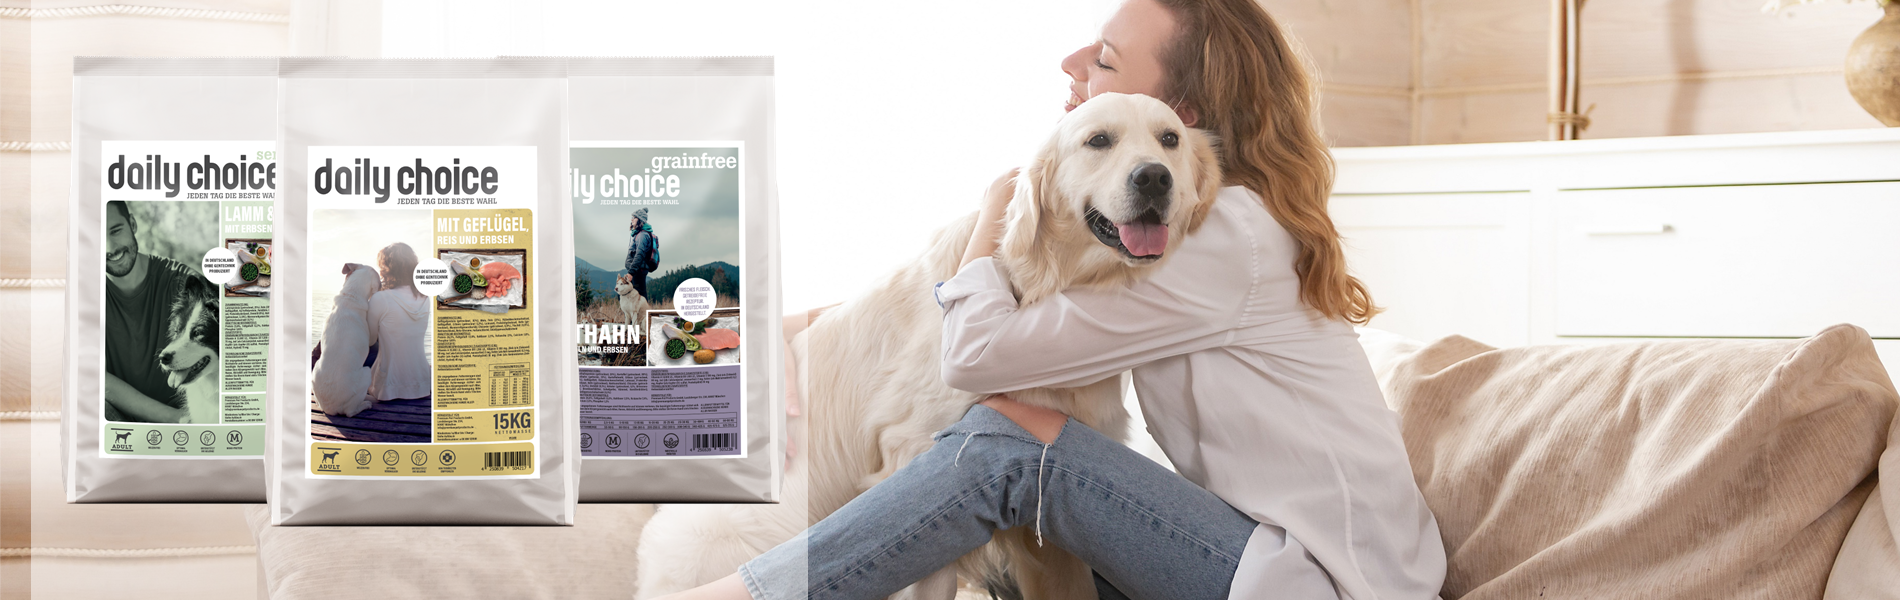 daily-choice-trockenfutter hund hundefutter basic sensitiv grainfree